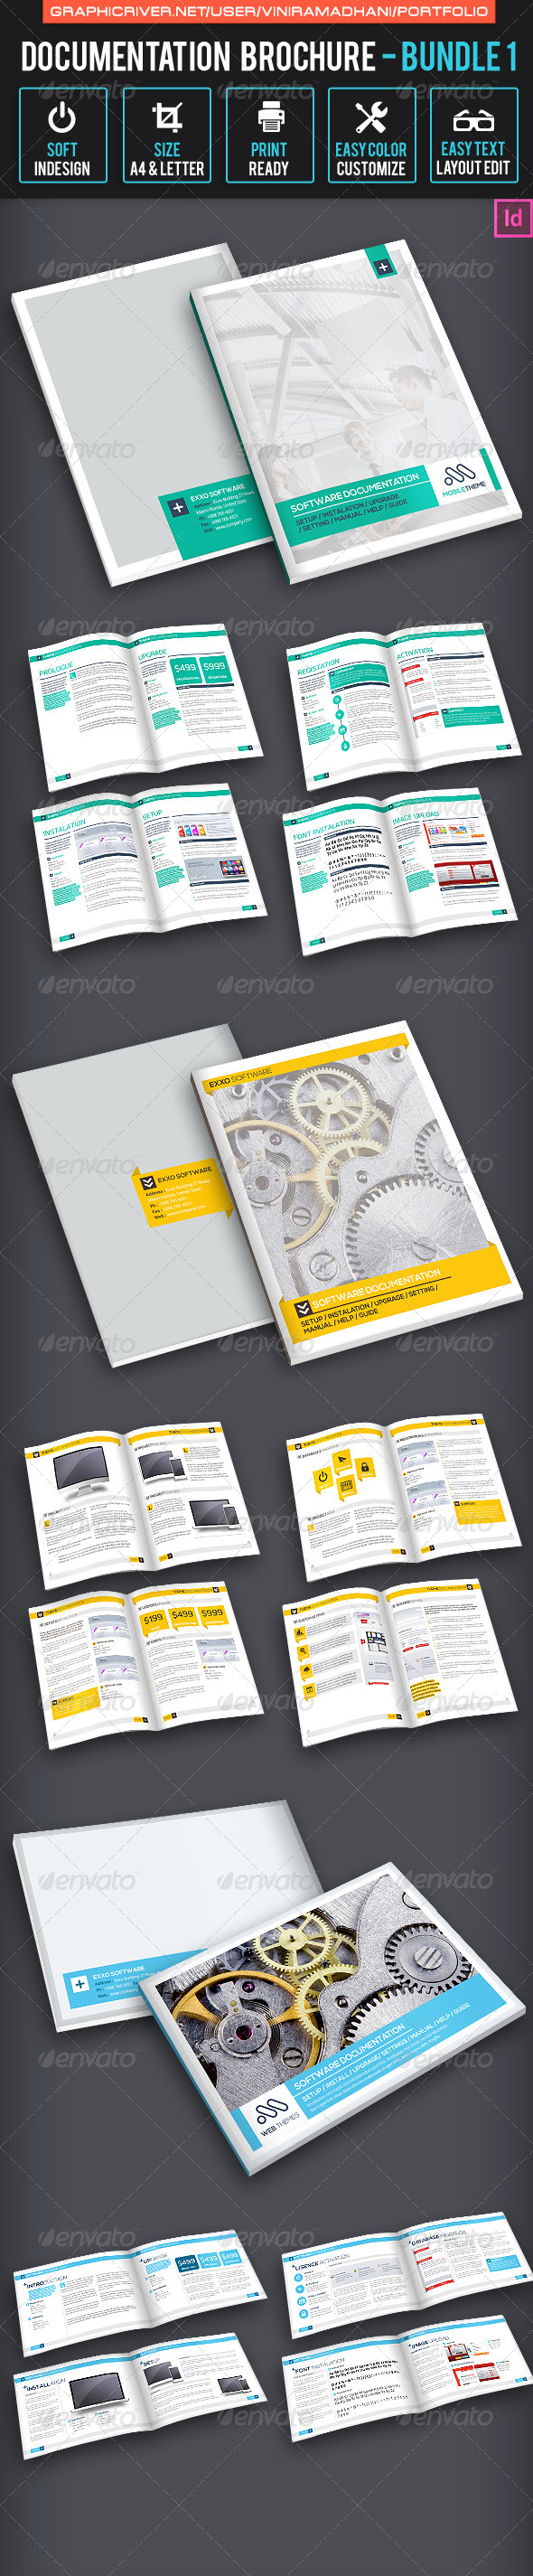 Documentation Brochure Bundle 1 - Informational Brochures